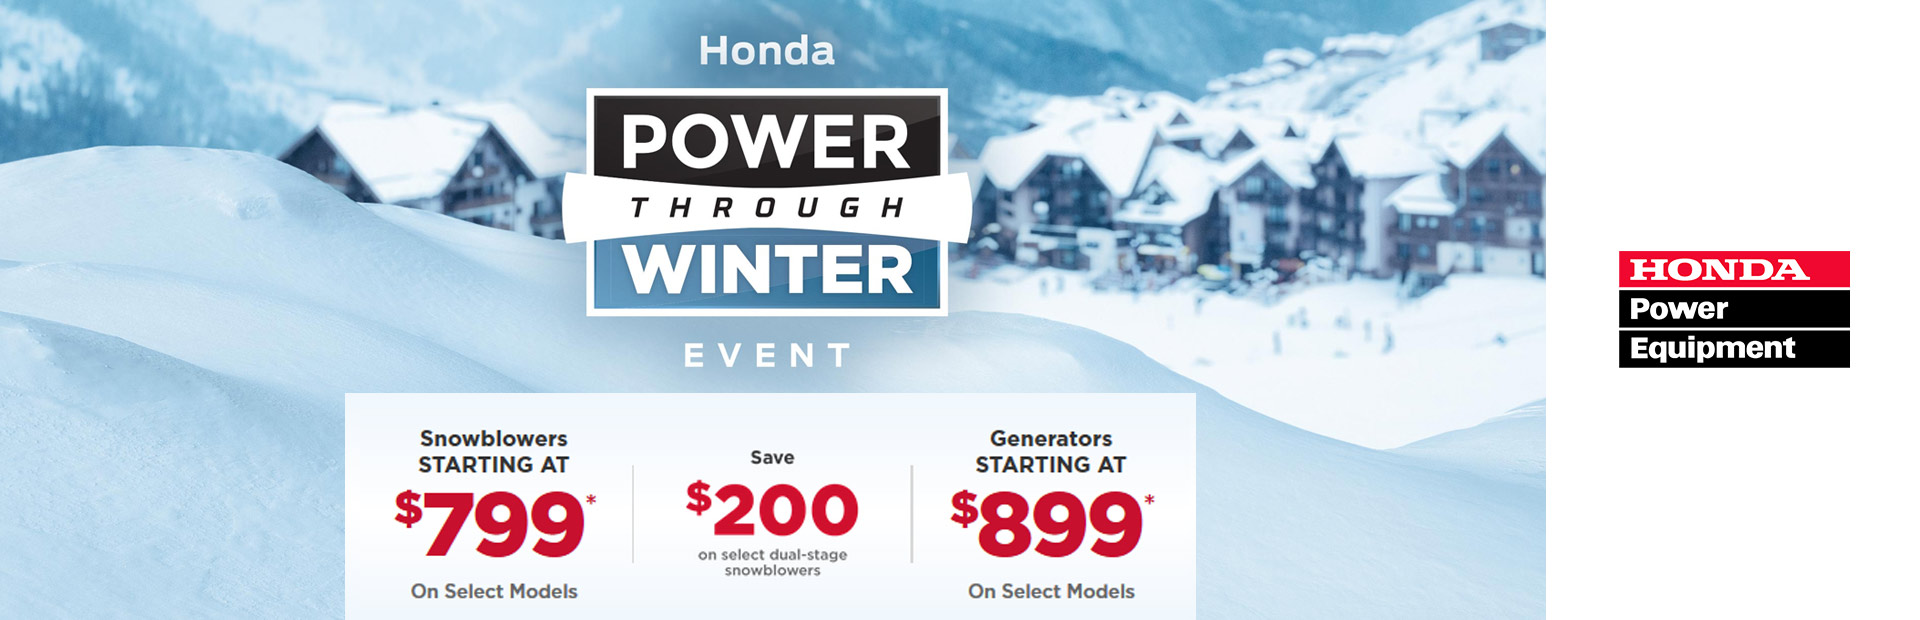 Honda Power Equipment: Honda Power Through Winter Event